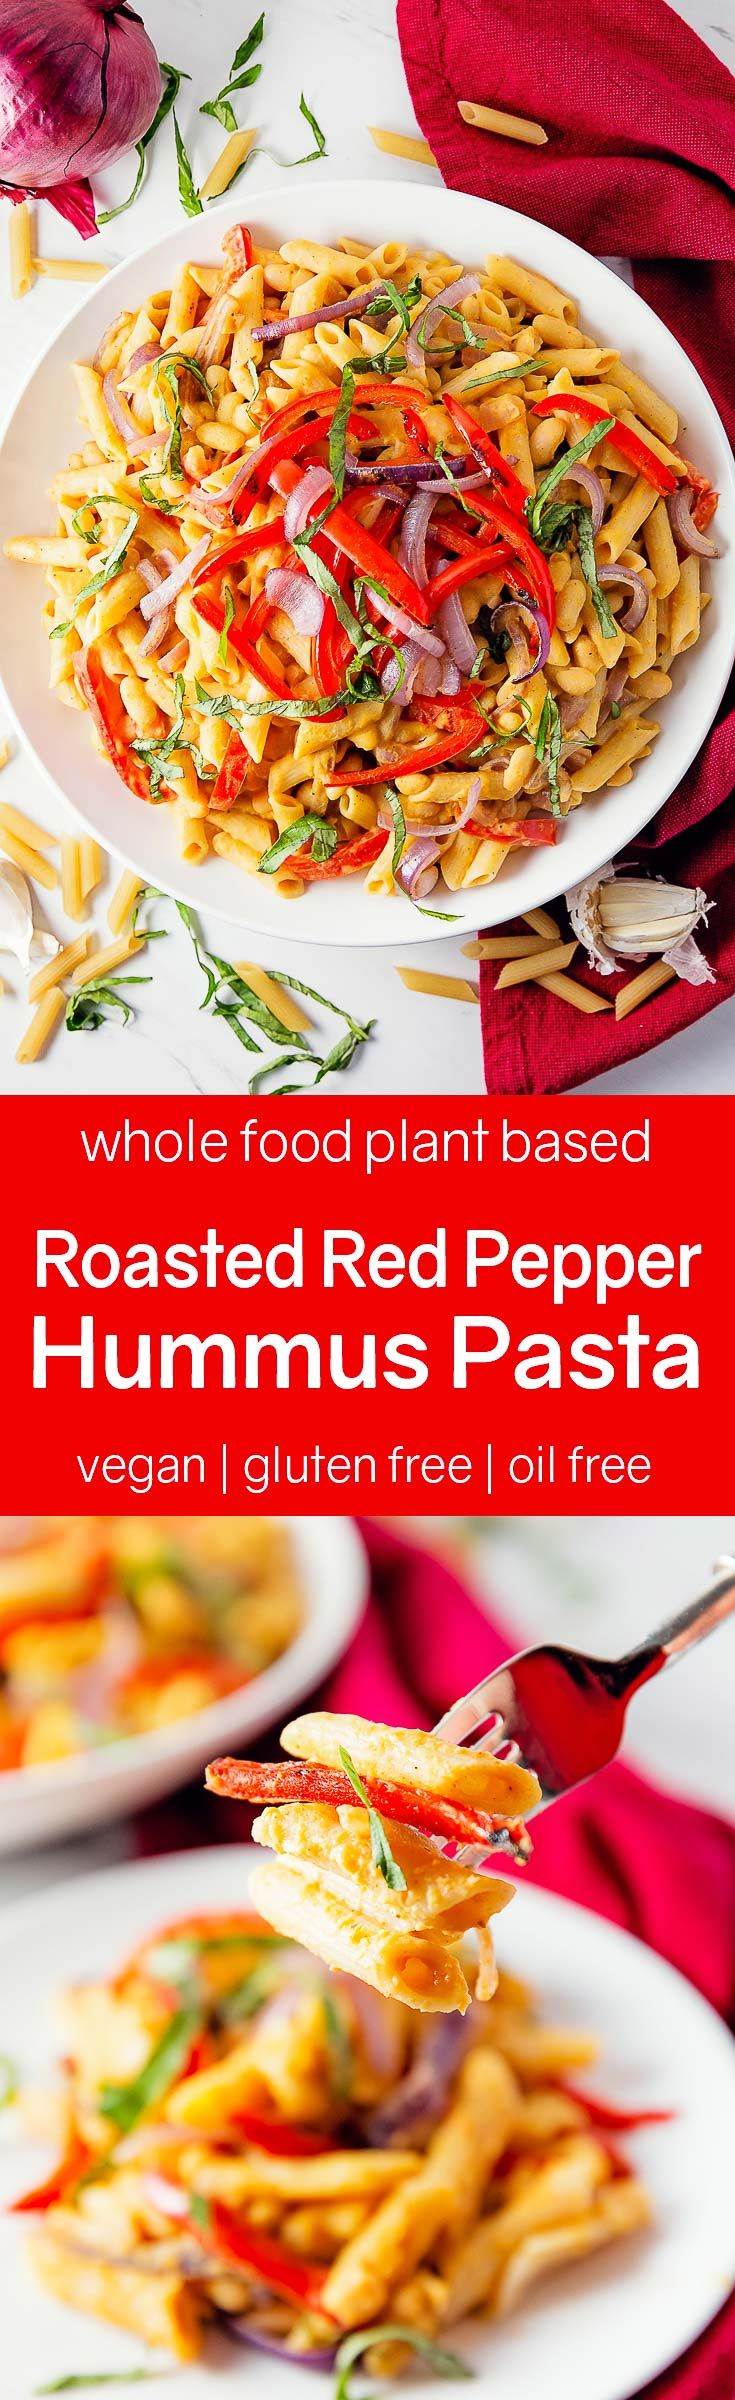 Best 25 whole food recipes ideas on pinterest whole 30 recipes roasted red pepper hummus pasta forumfinder Choice Image